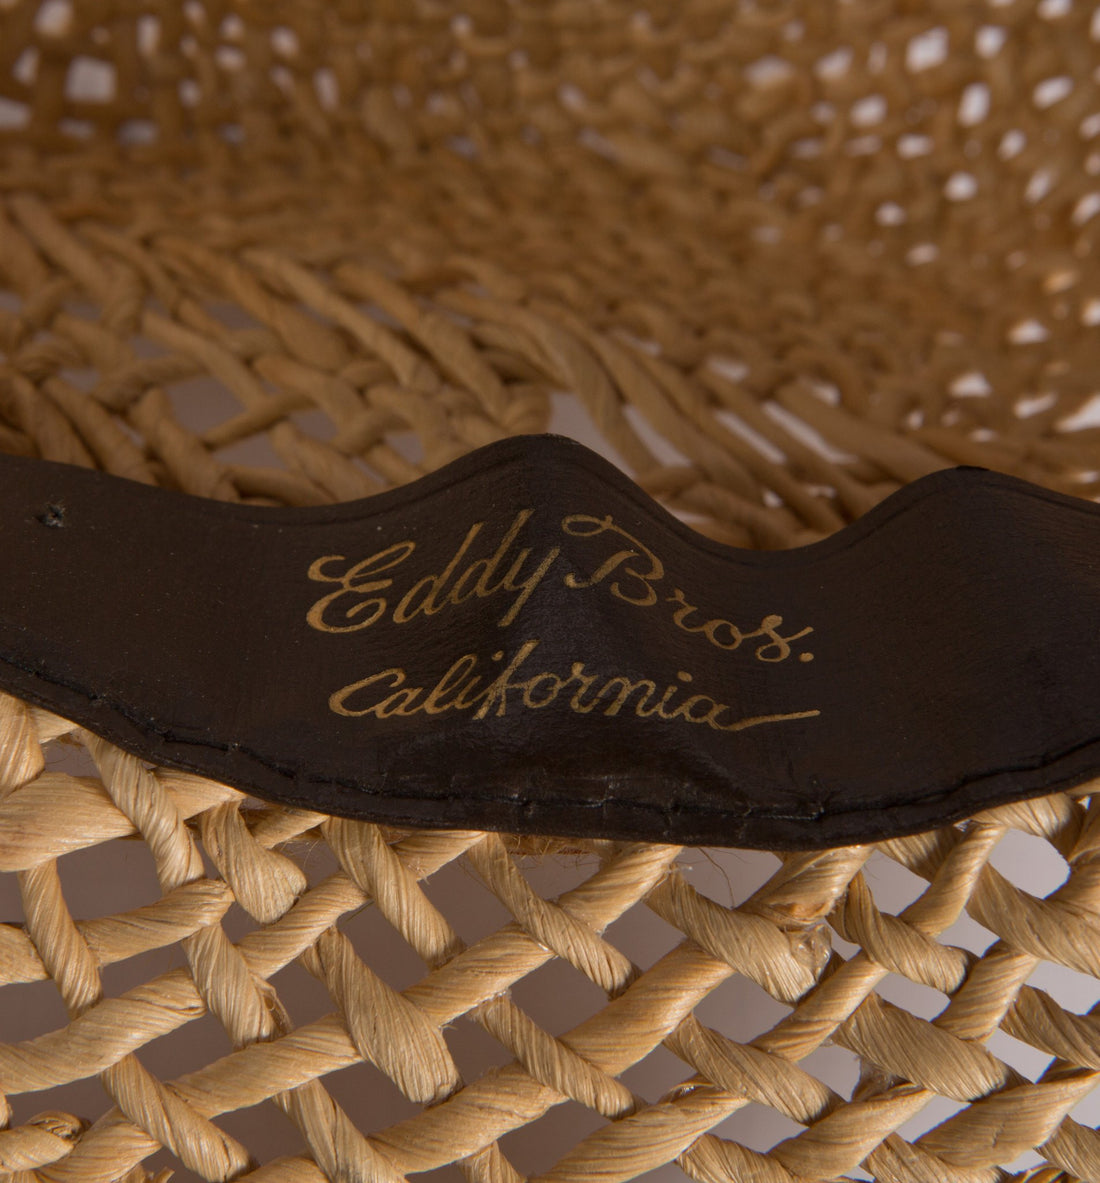 Vintage Eddy Bros California Straw Hat, 6 5/8 - Vintage - Iron and Resin